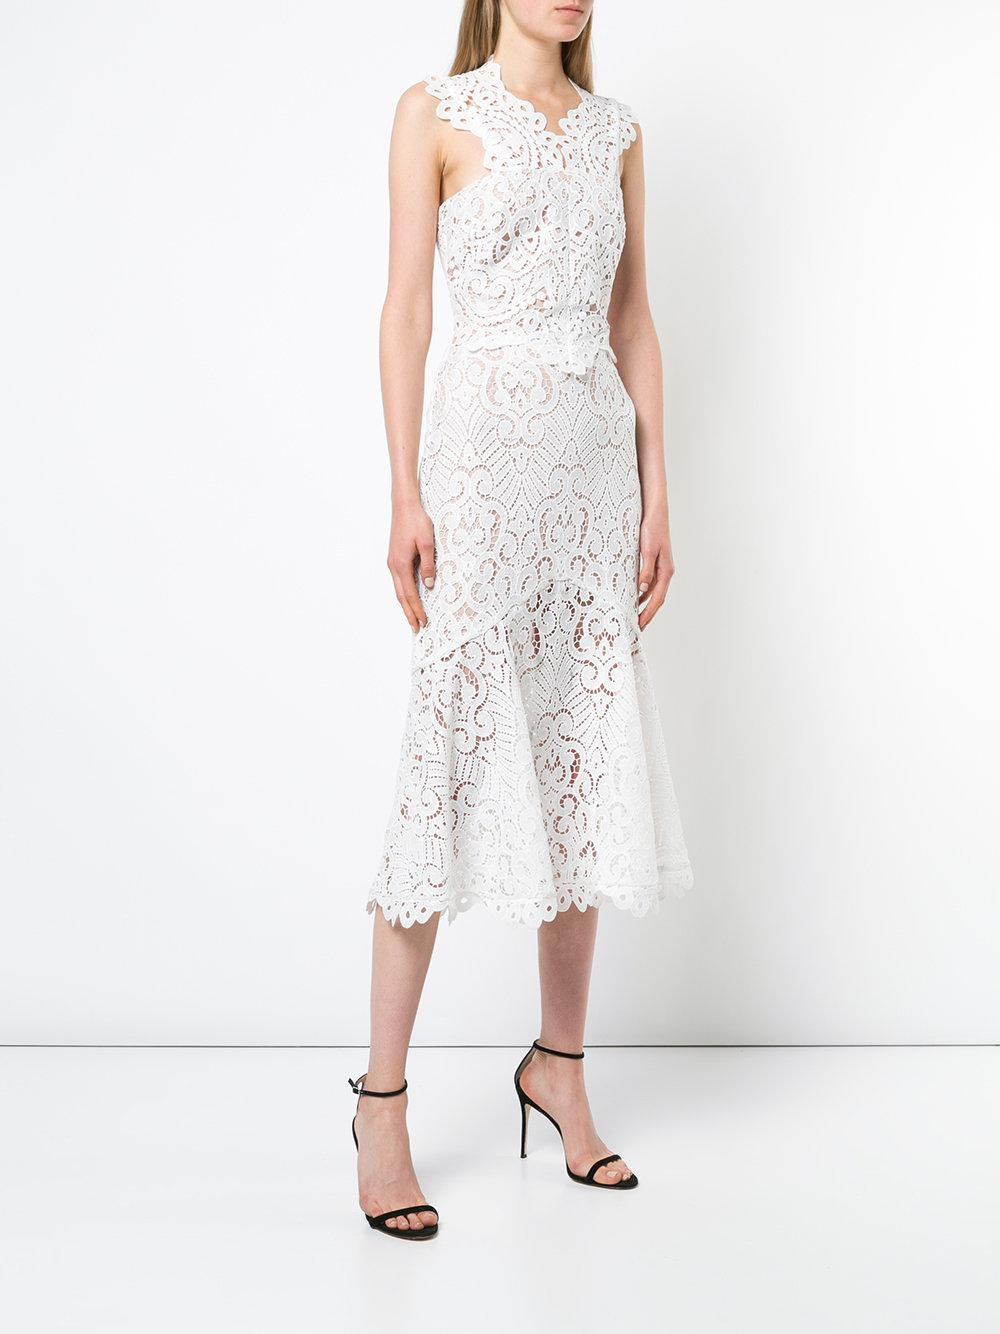 Hot Sale Cheap Sale Fashion Style broderie anglaise flared dress - White Nicole Miller Pick A Best For Sale 9eBZ9zjB9